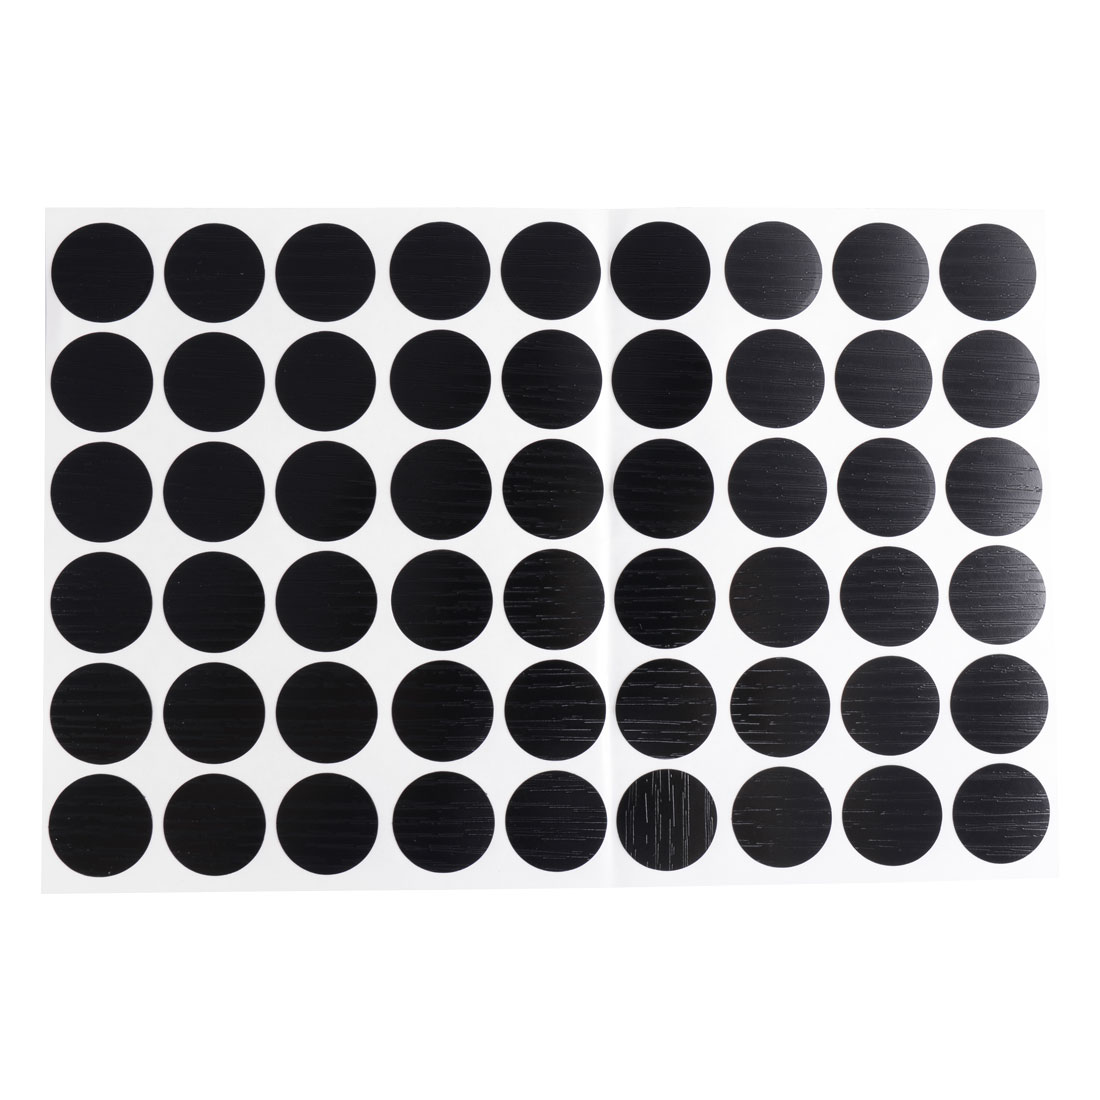 Furniture Desk Table Self-adhesive 21mm Screw Hole Covers Caps Stickers Black 54 in 1